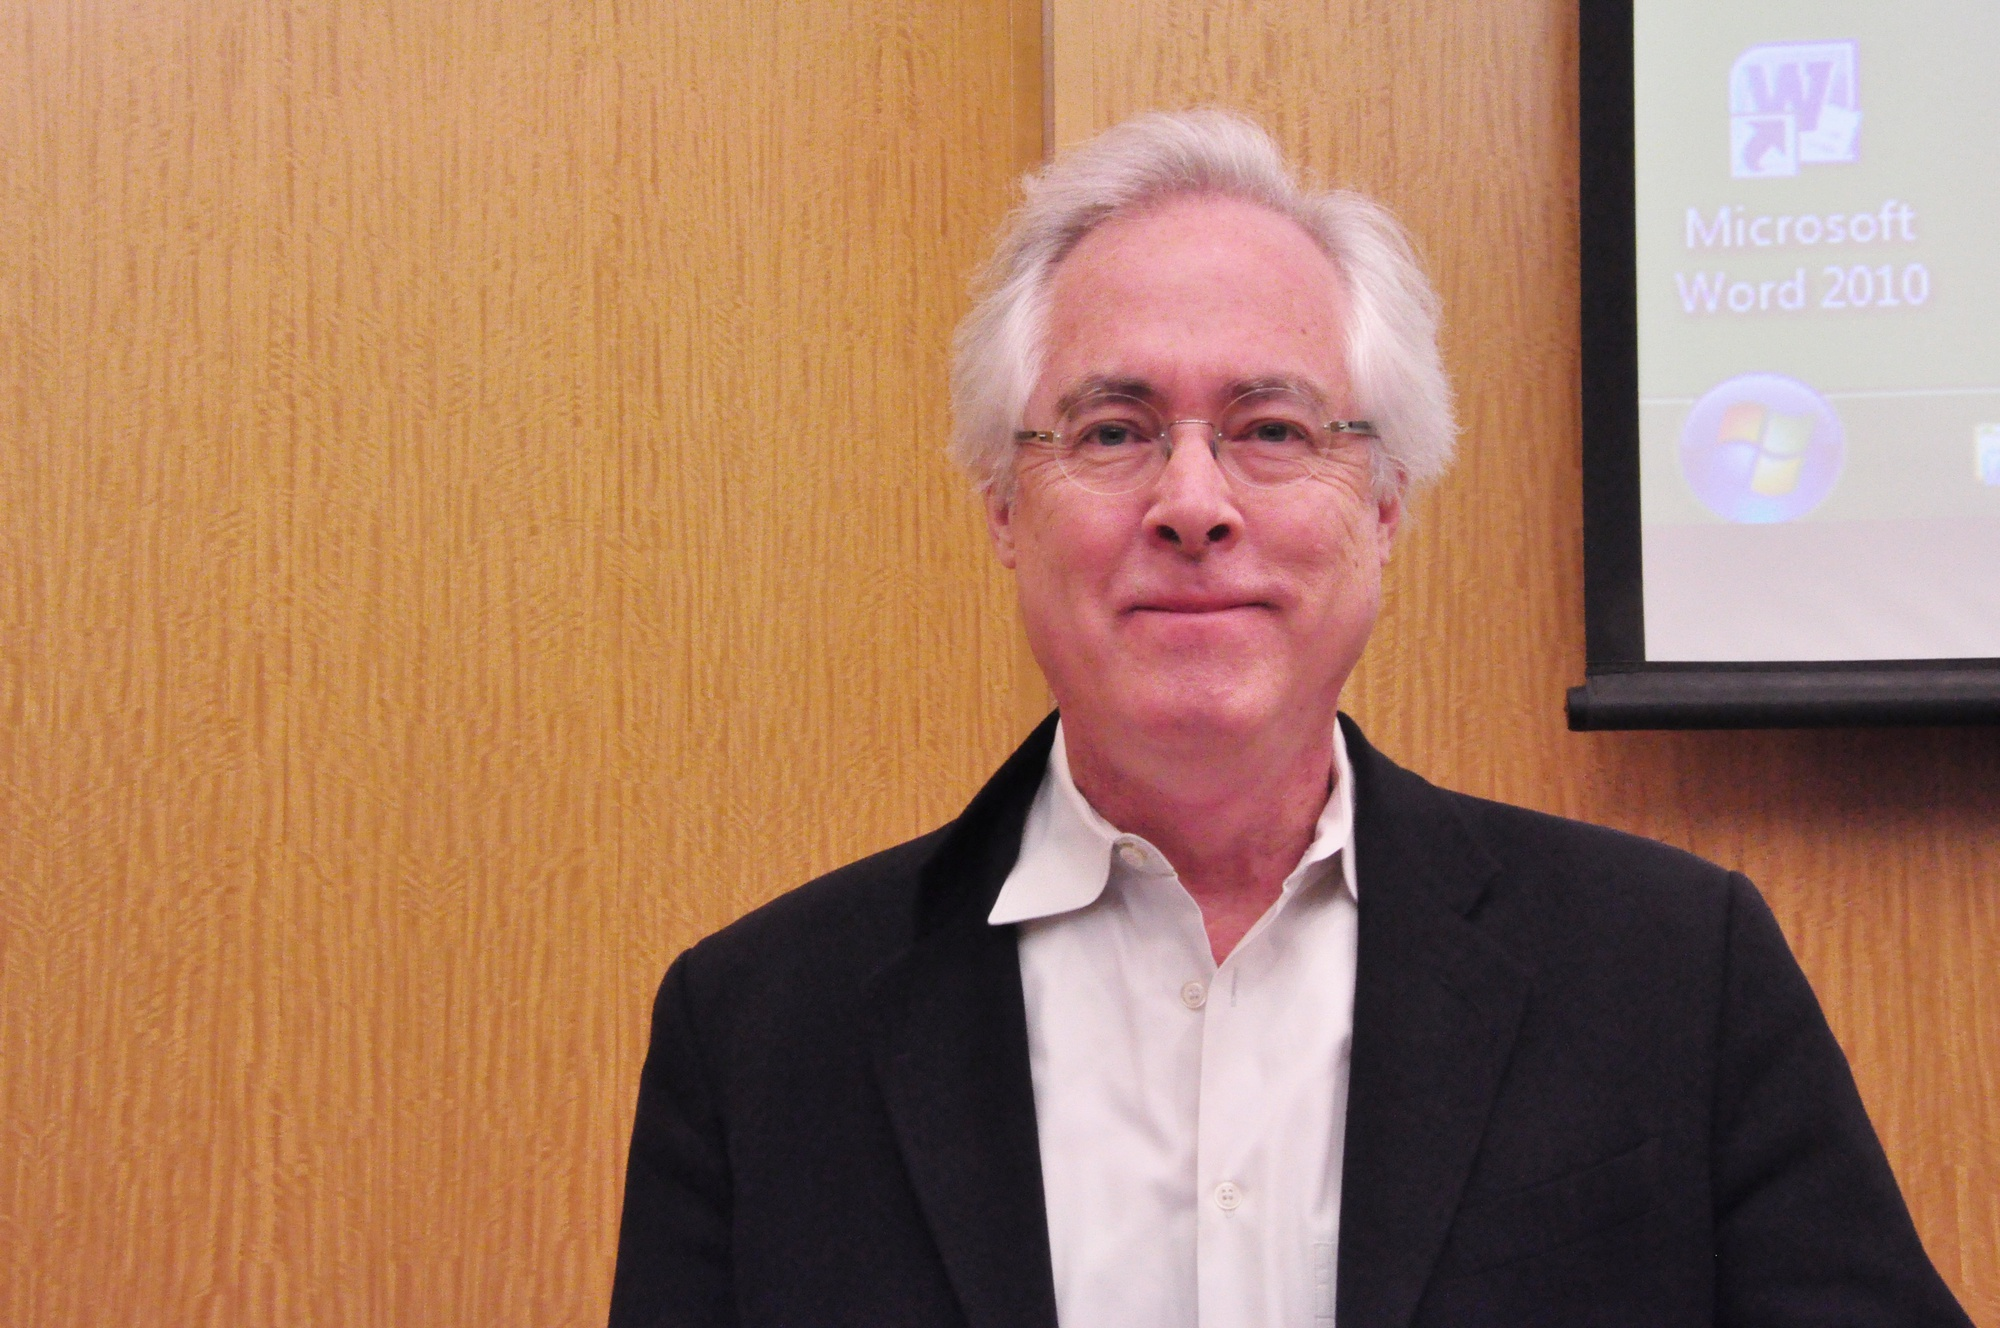 English professor Louis Menand, pictured here from 2013, chaired the previous Task Force on General Education that crafted the current Gen Ed program.